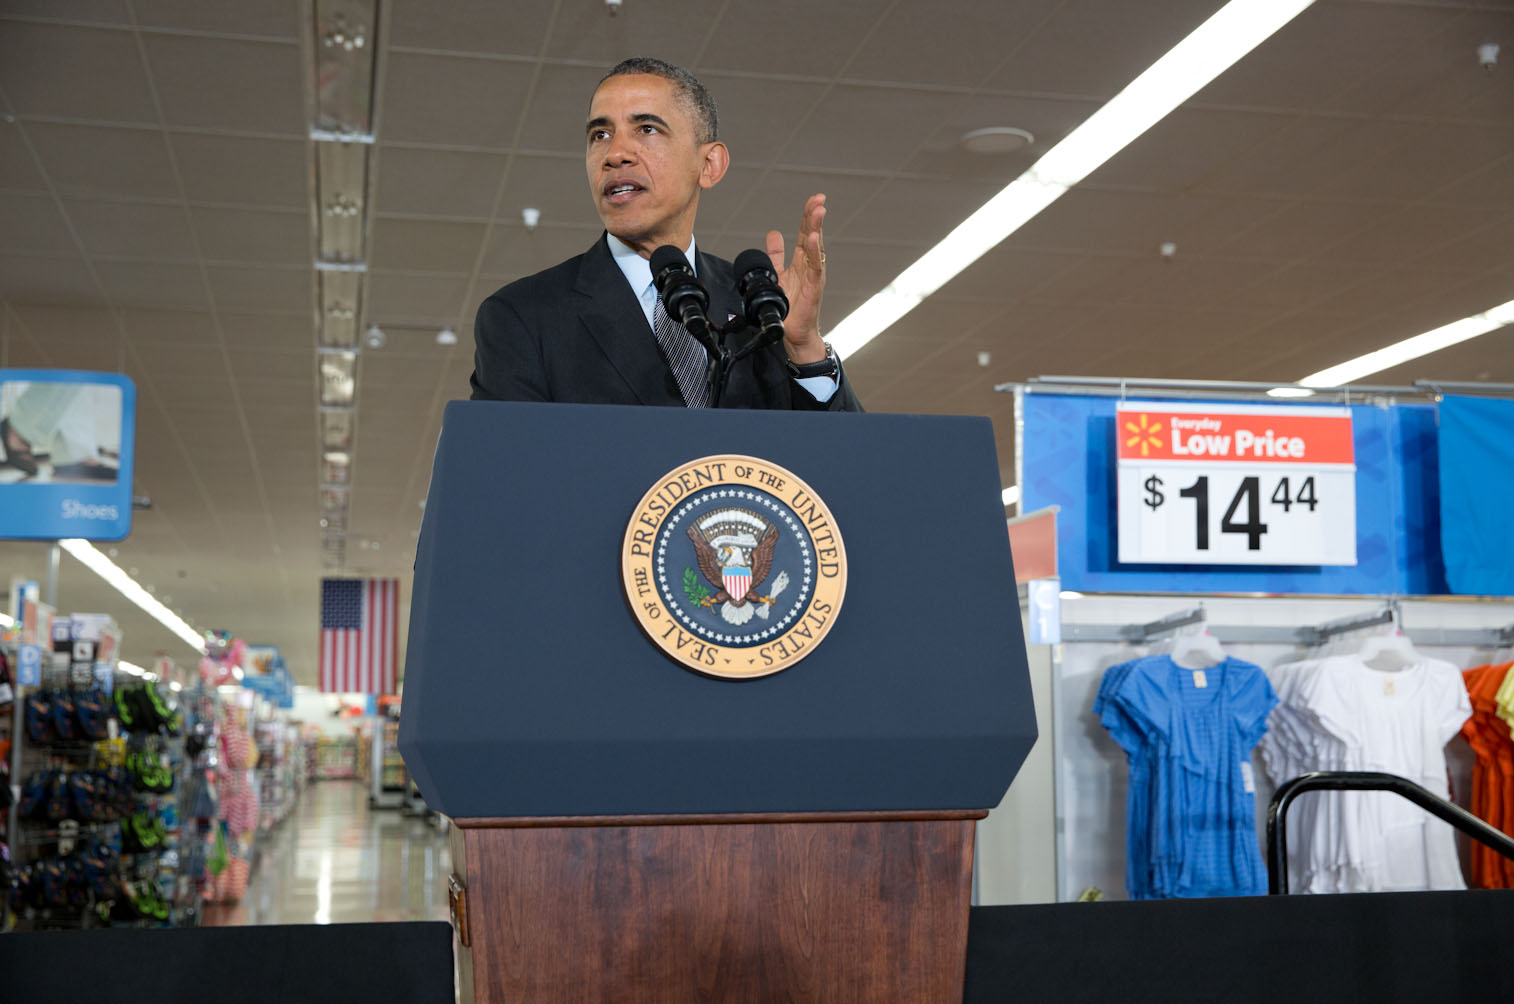 President Barack Obama delivers remarks on energy efficiency, at the Walmart in Mountain View, California